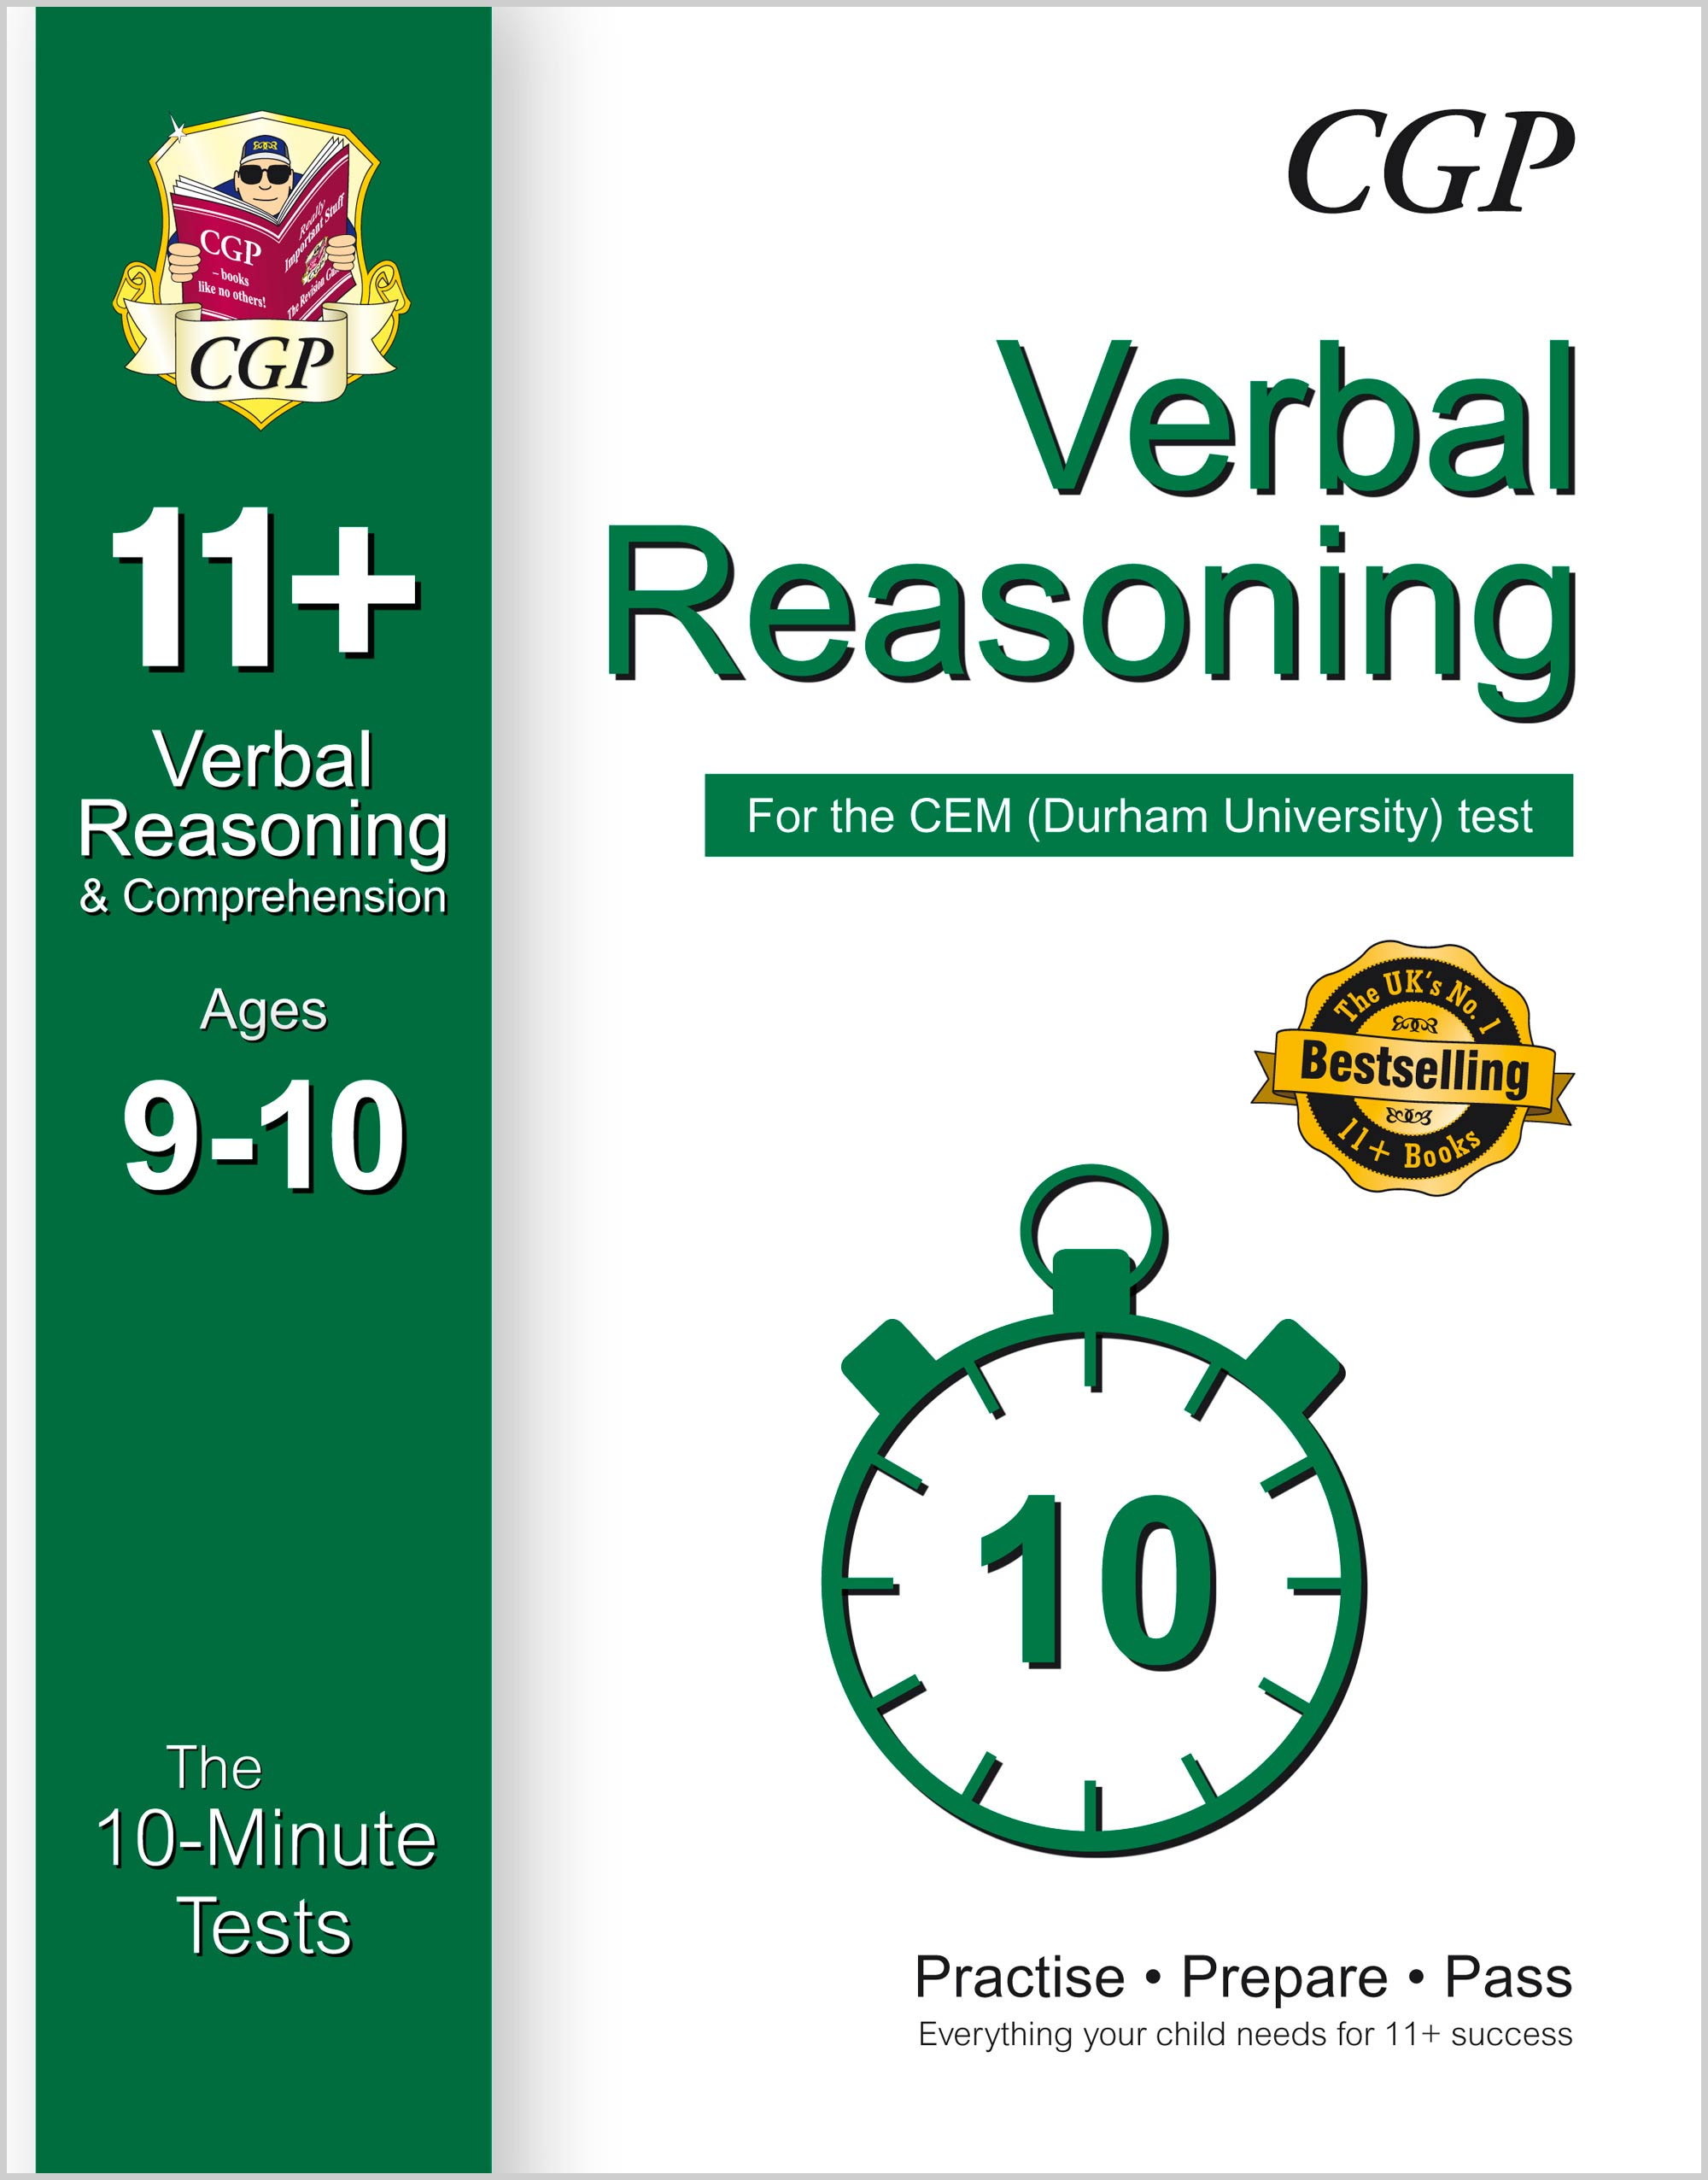 V5XPDE1 - 10-Minute Tests for 11+ Verbal Reasoning Ages 9-10 - CEM Test